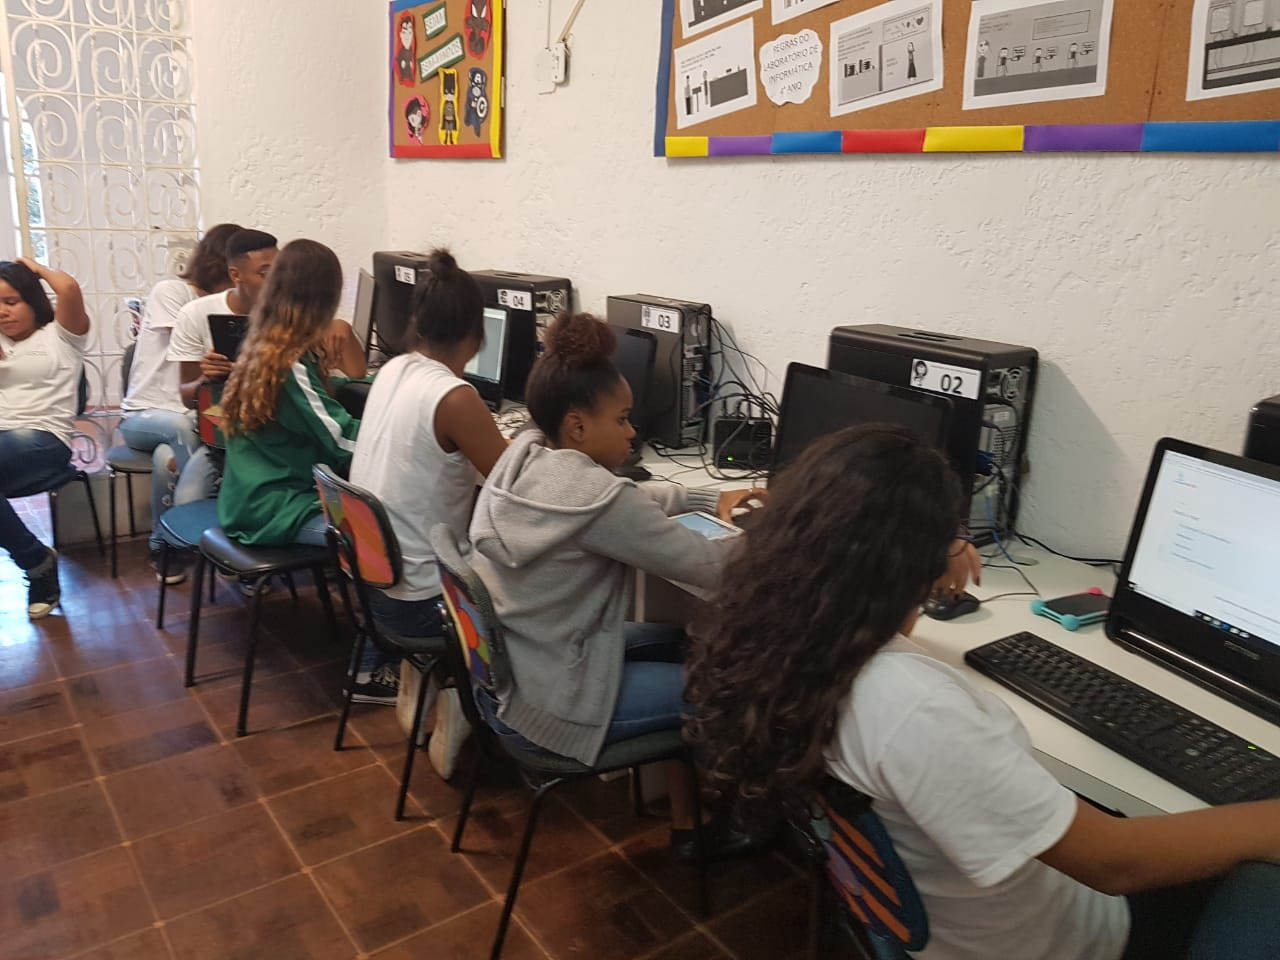 EduMais students work on their web design and computer skills in the IT room of Solar Meninos de Luz school